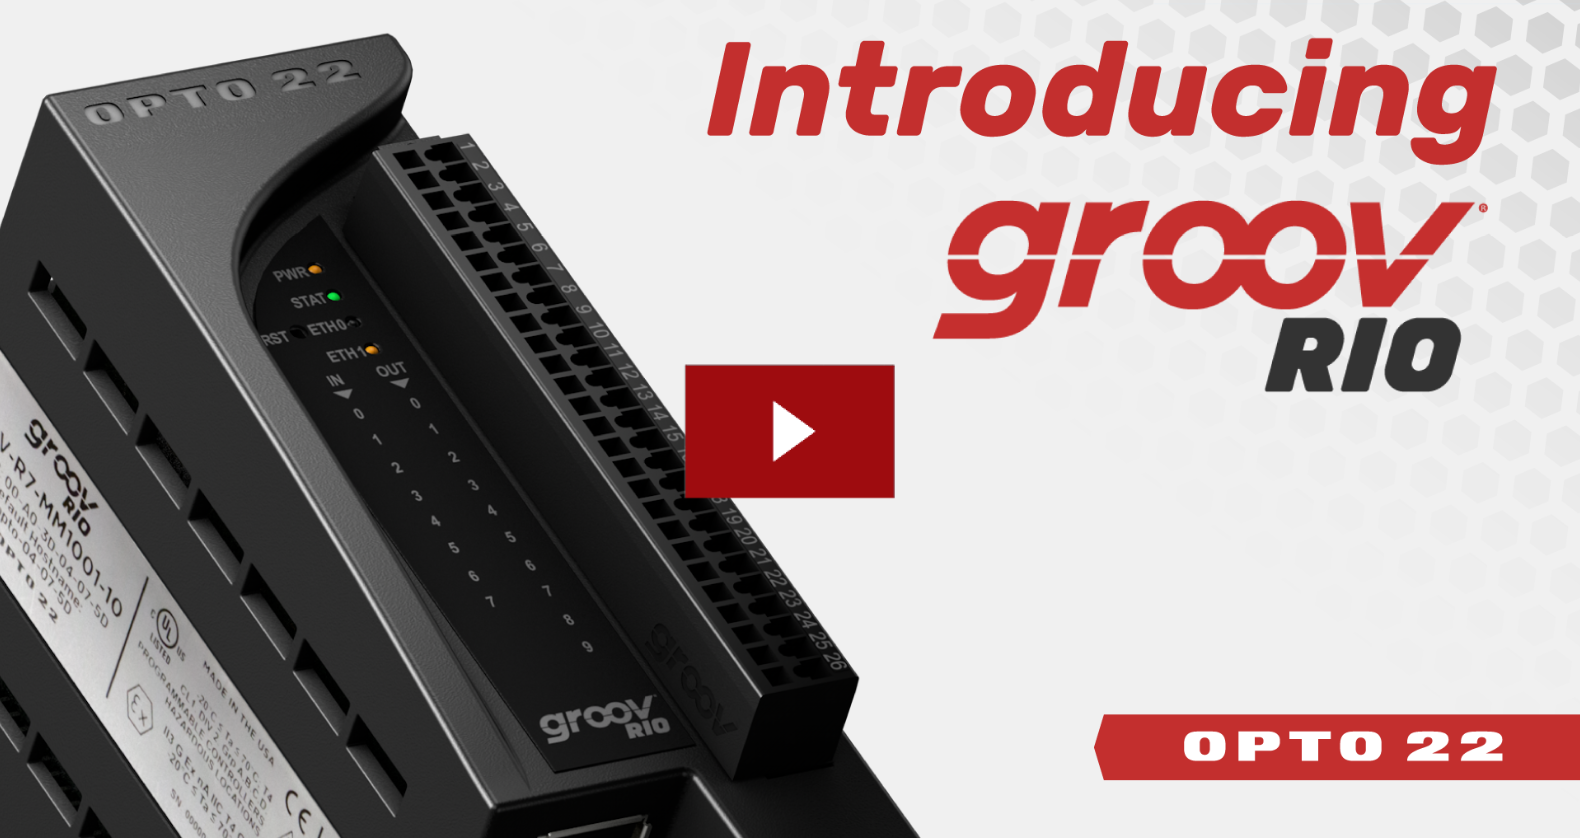 Watch groov RIO in action with new on-demand webinar